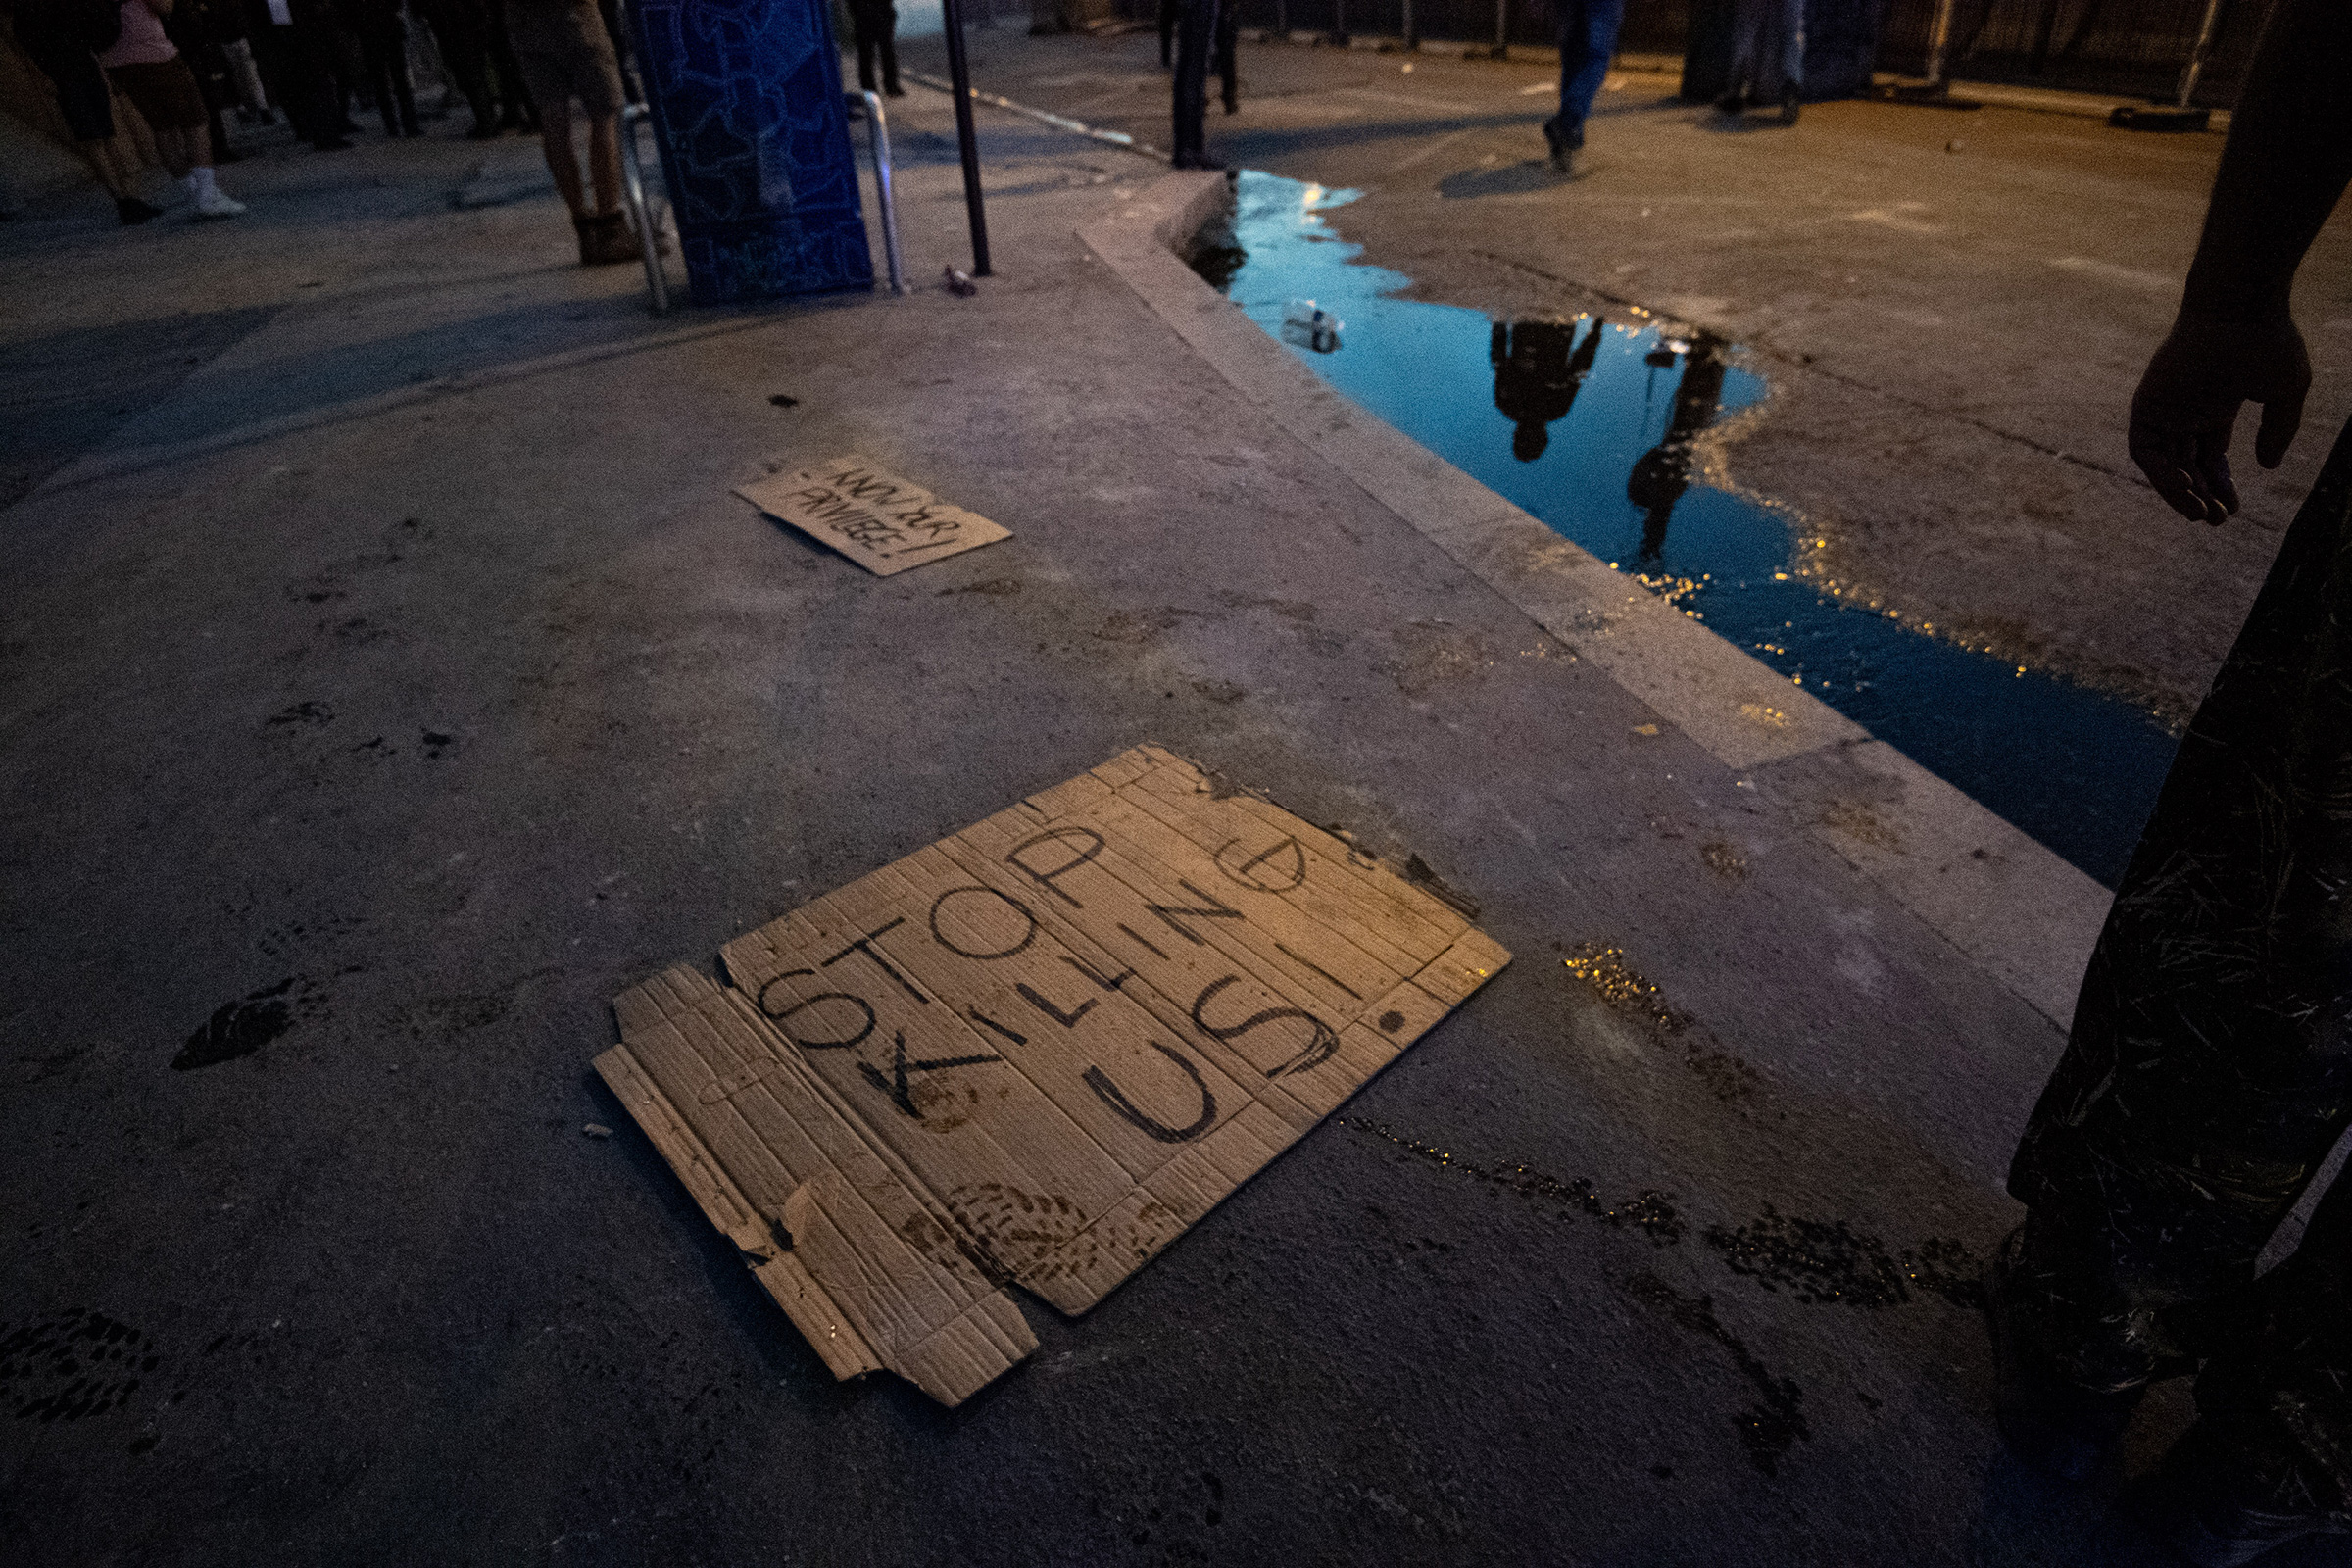 Signs are seen on the floor after clashes erupt following the intervention of security forces in a protest against police brutality at the Tribunal de Paris courthouse on June 2.